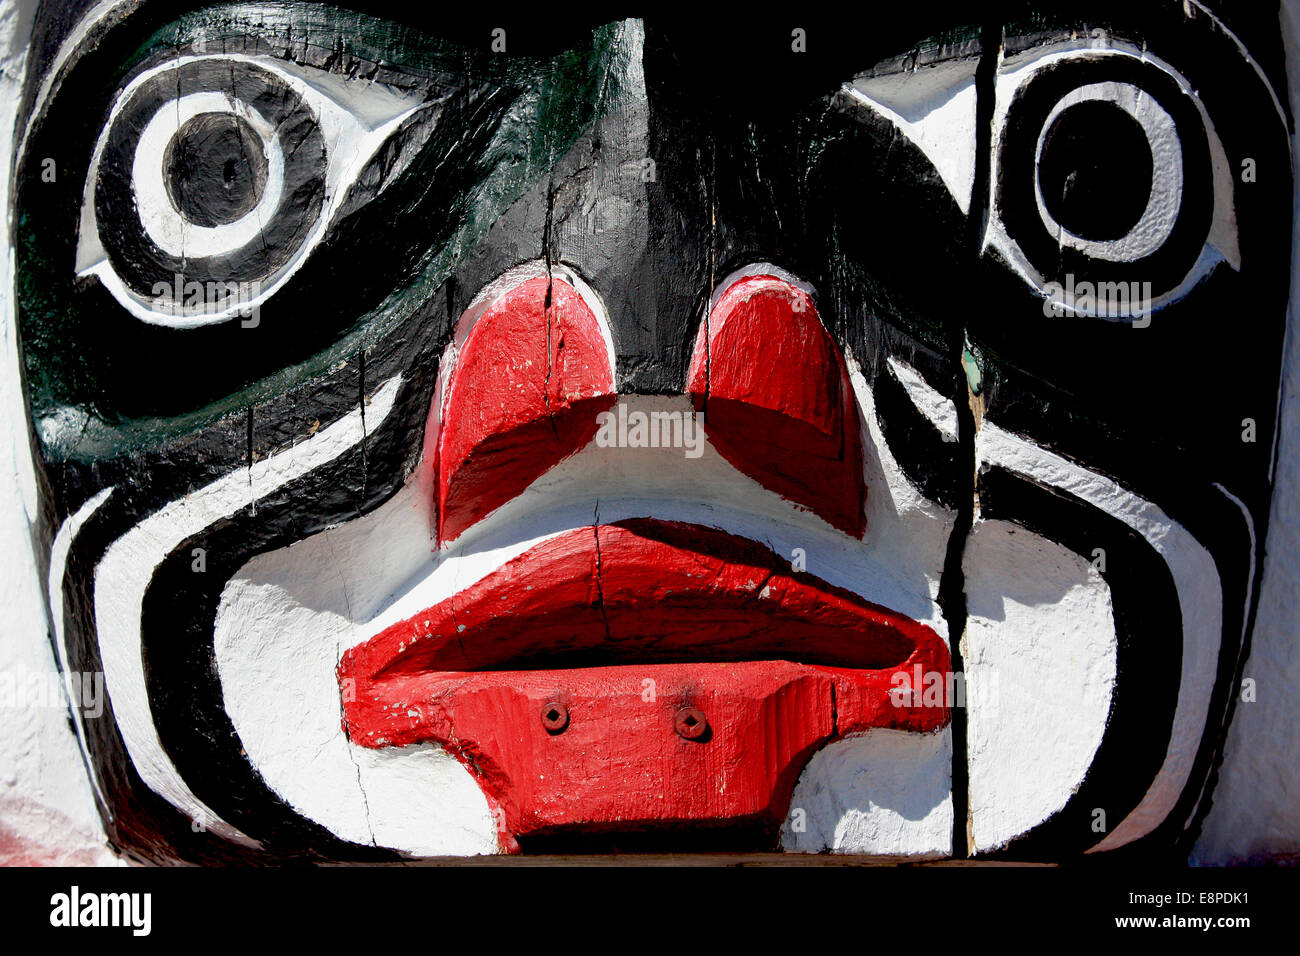 Face Carved in Totem Pole - Stock Image